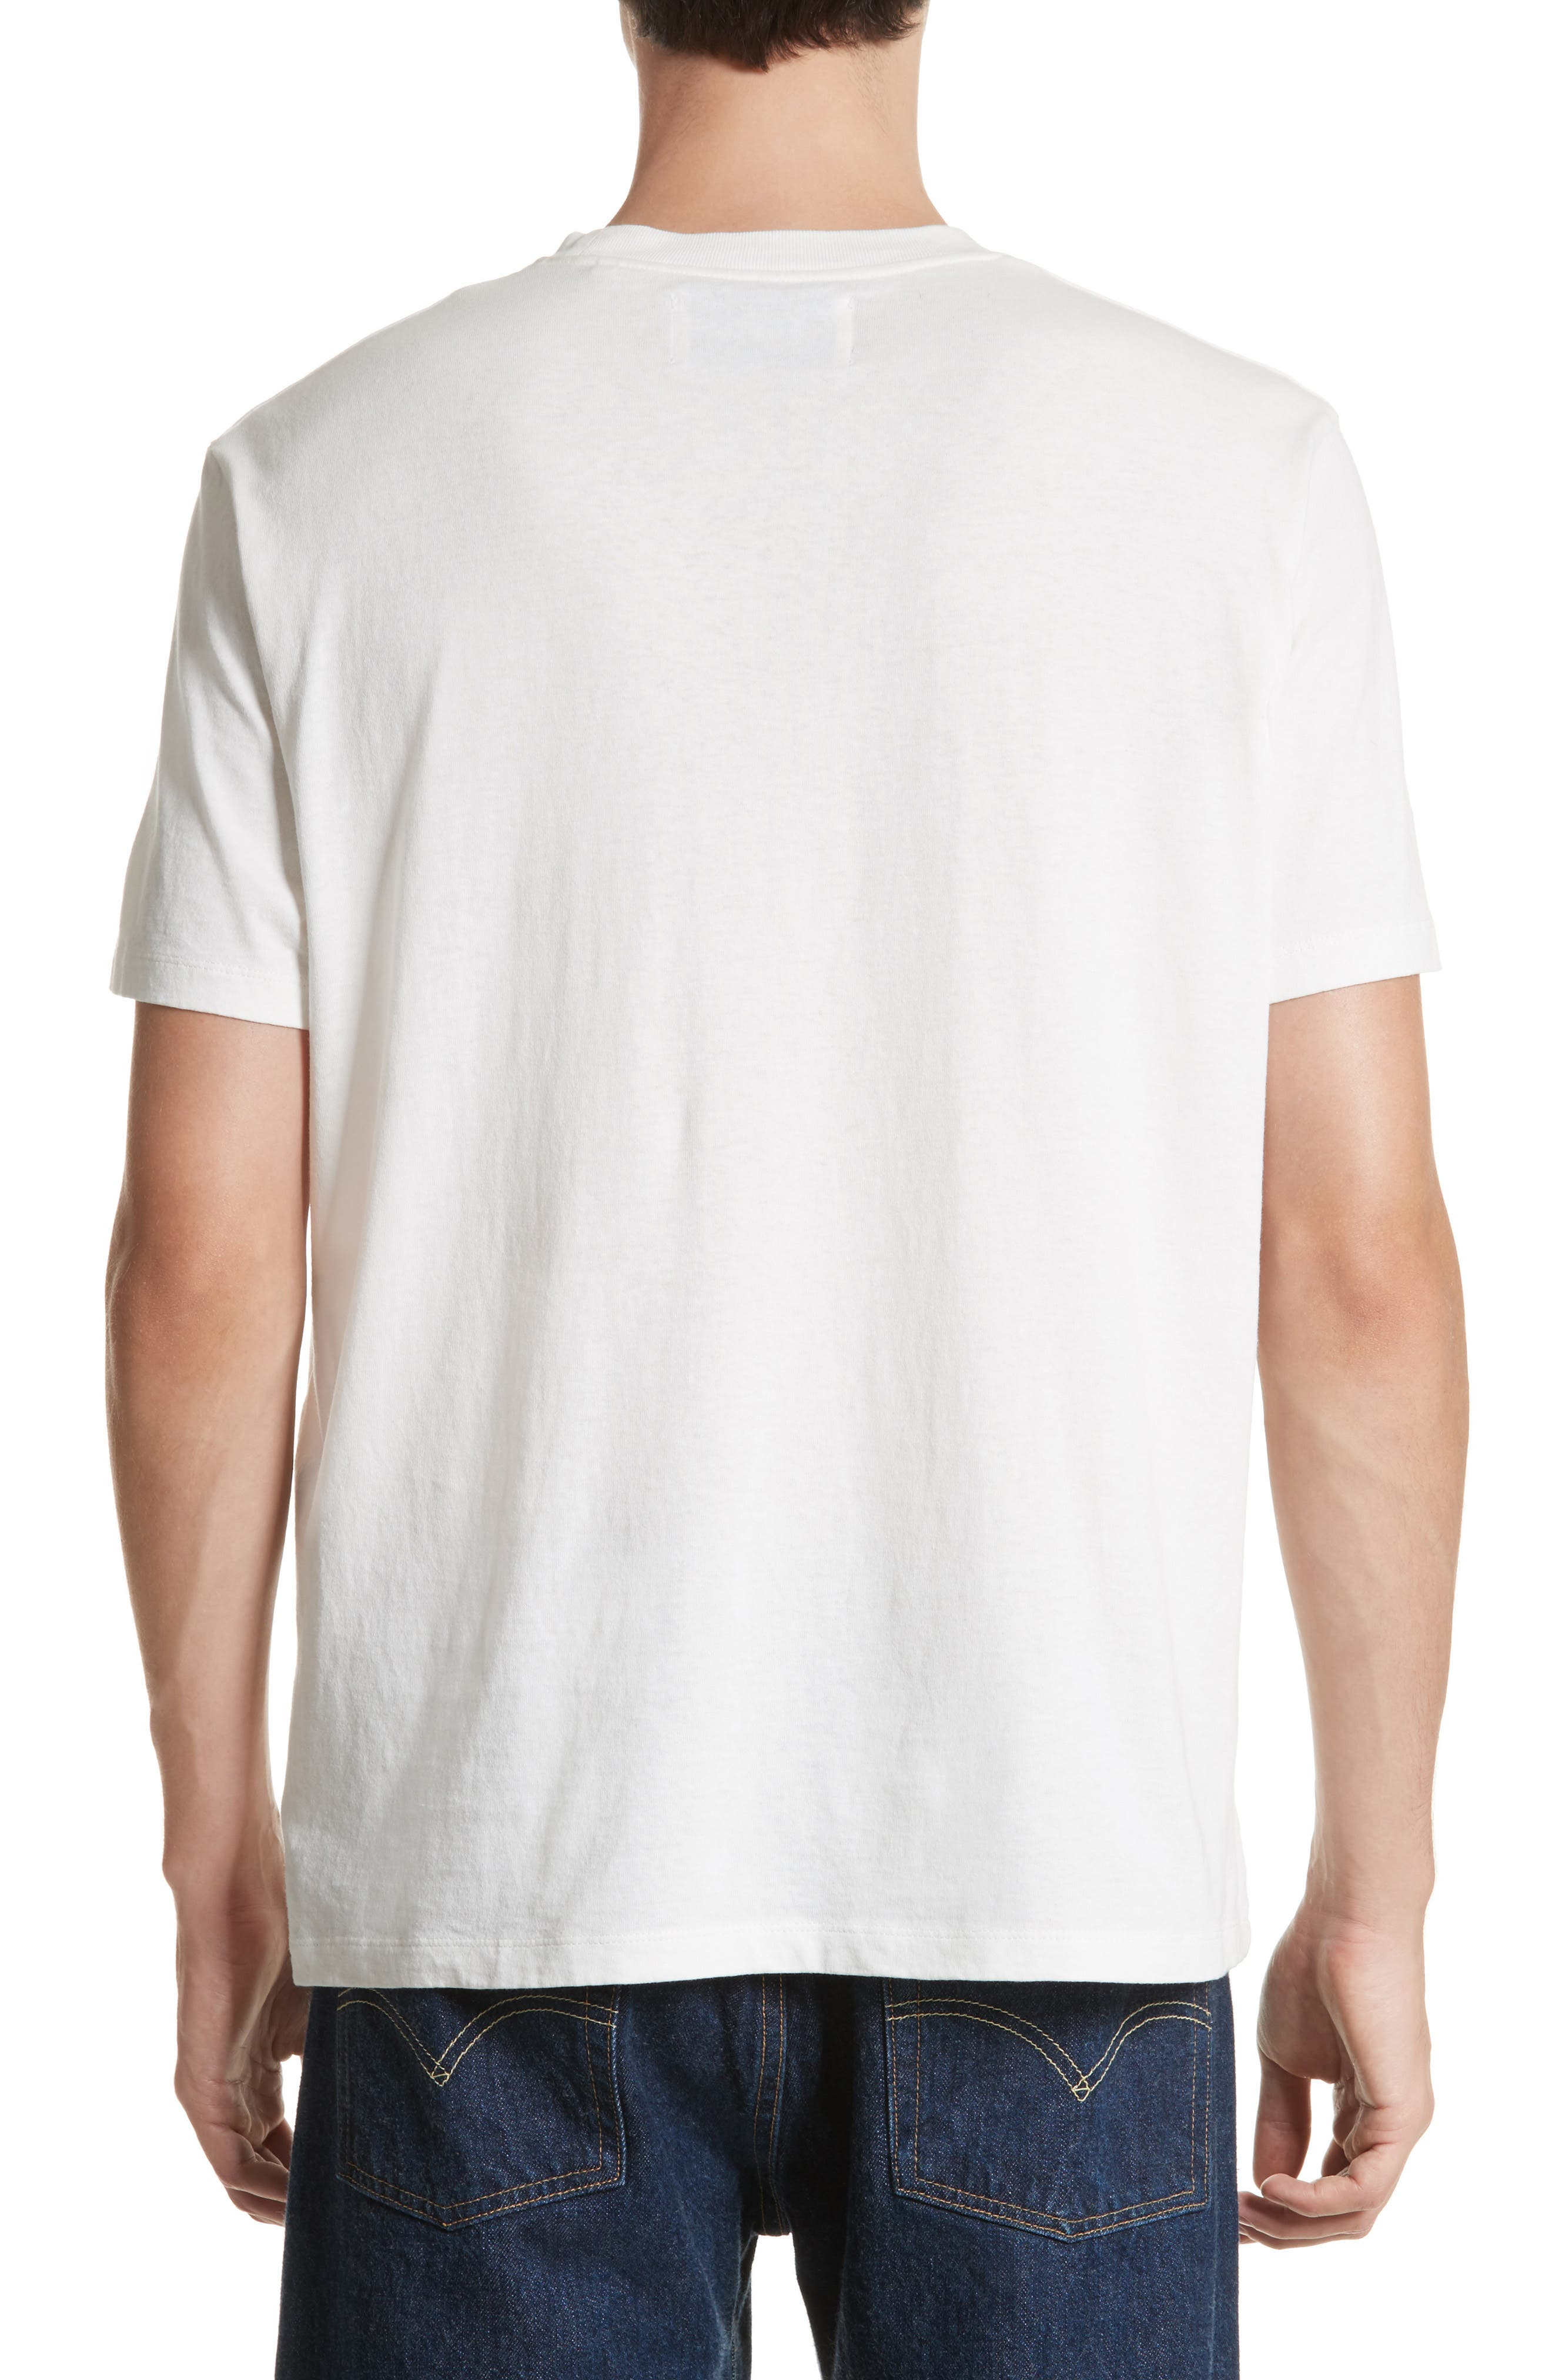 Bored Is All We Are Graphic T-Shirt,                             Alternate thumbnail 2, color,                             900